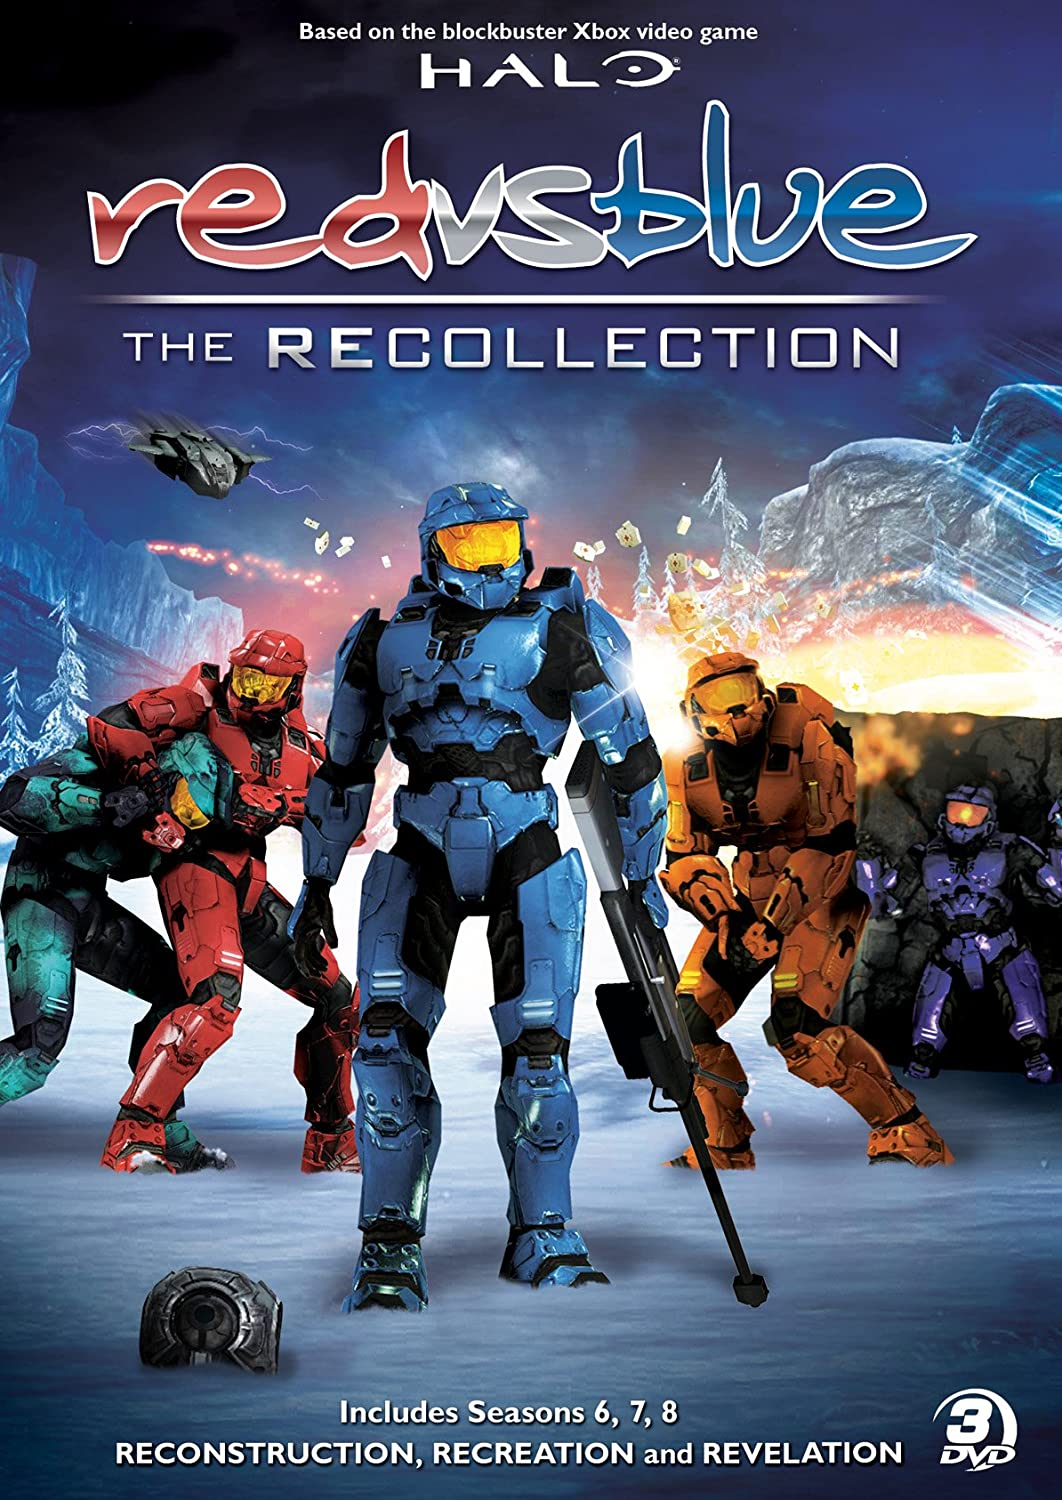 Amazon.com: Red vs. Blue: The Recollection Collection (Seasons 6-8): Burnie Burns, Jason Saldana, Gustavo Sorola, 767685225127: Movies & TV